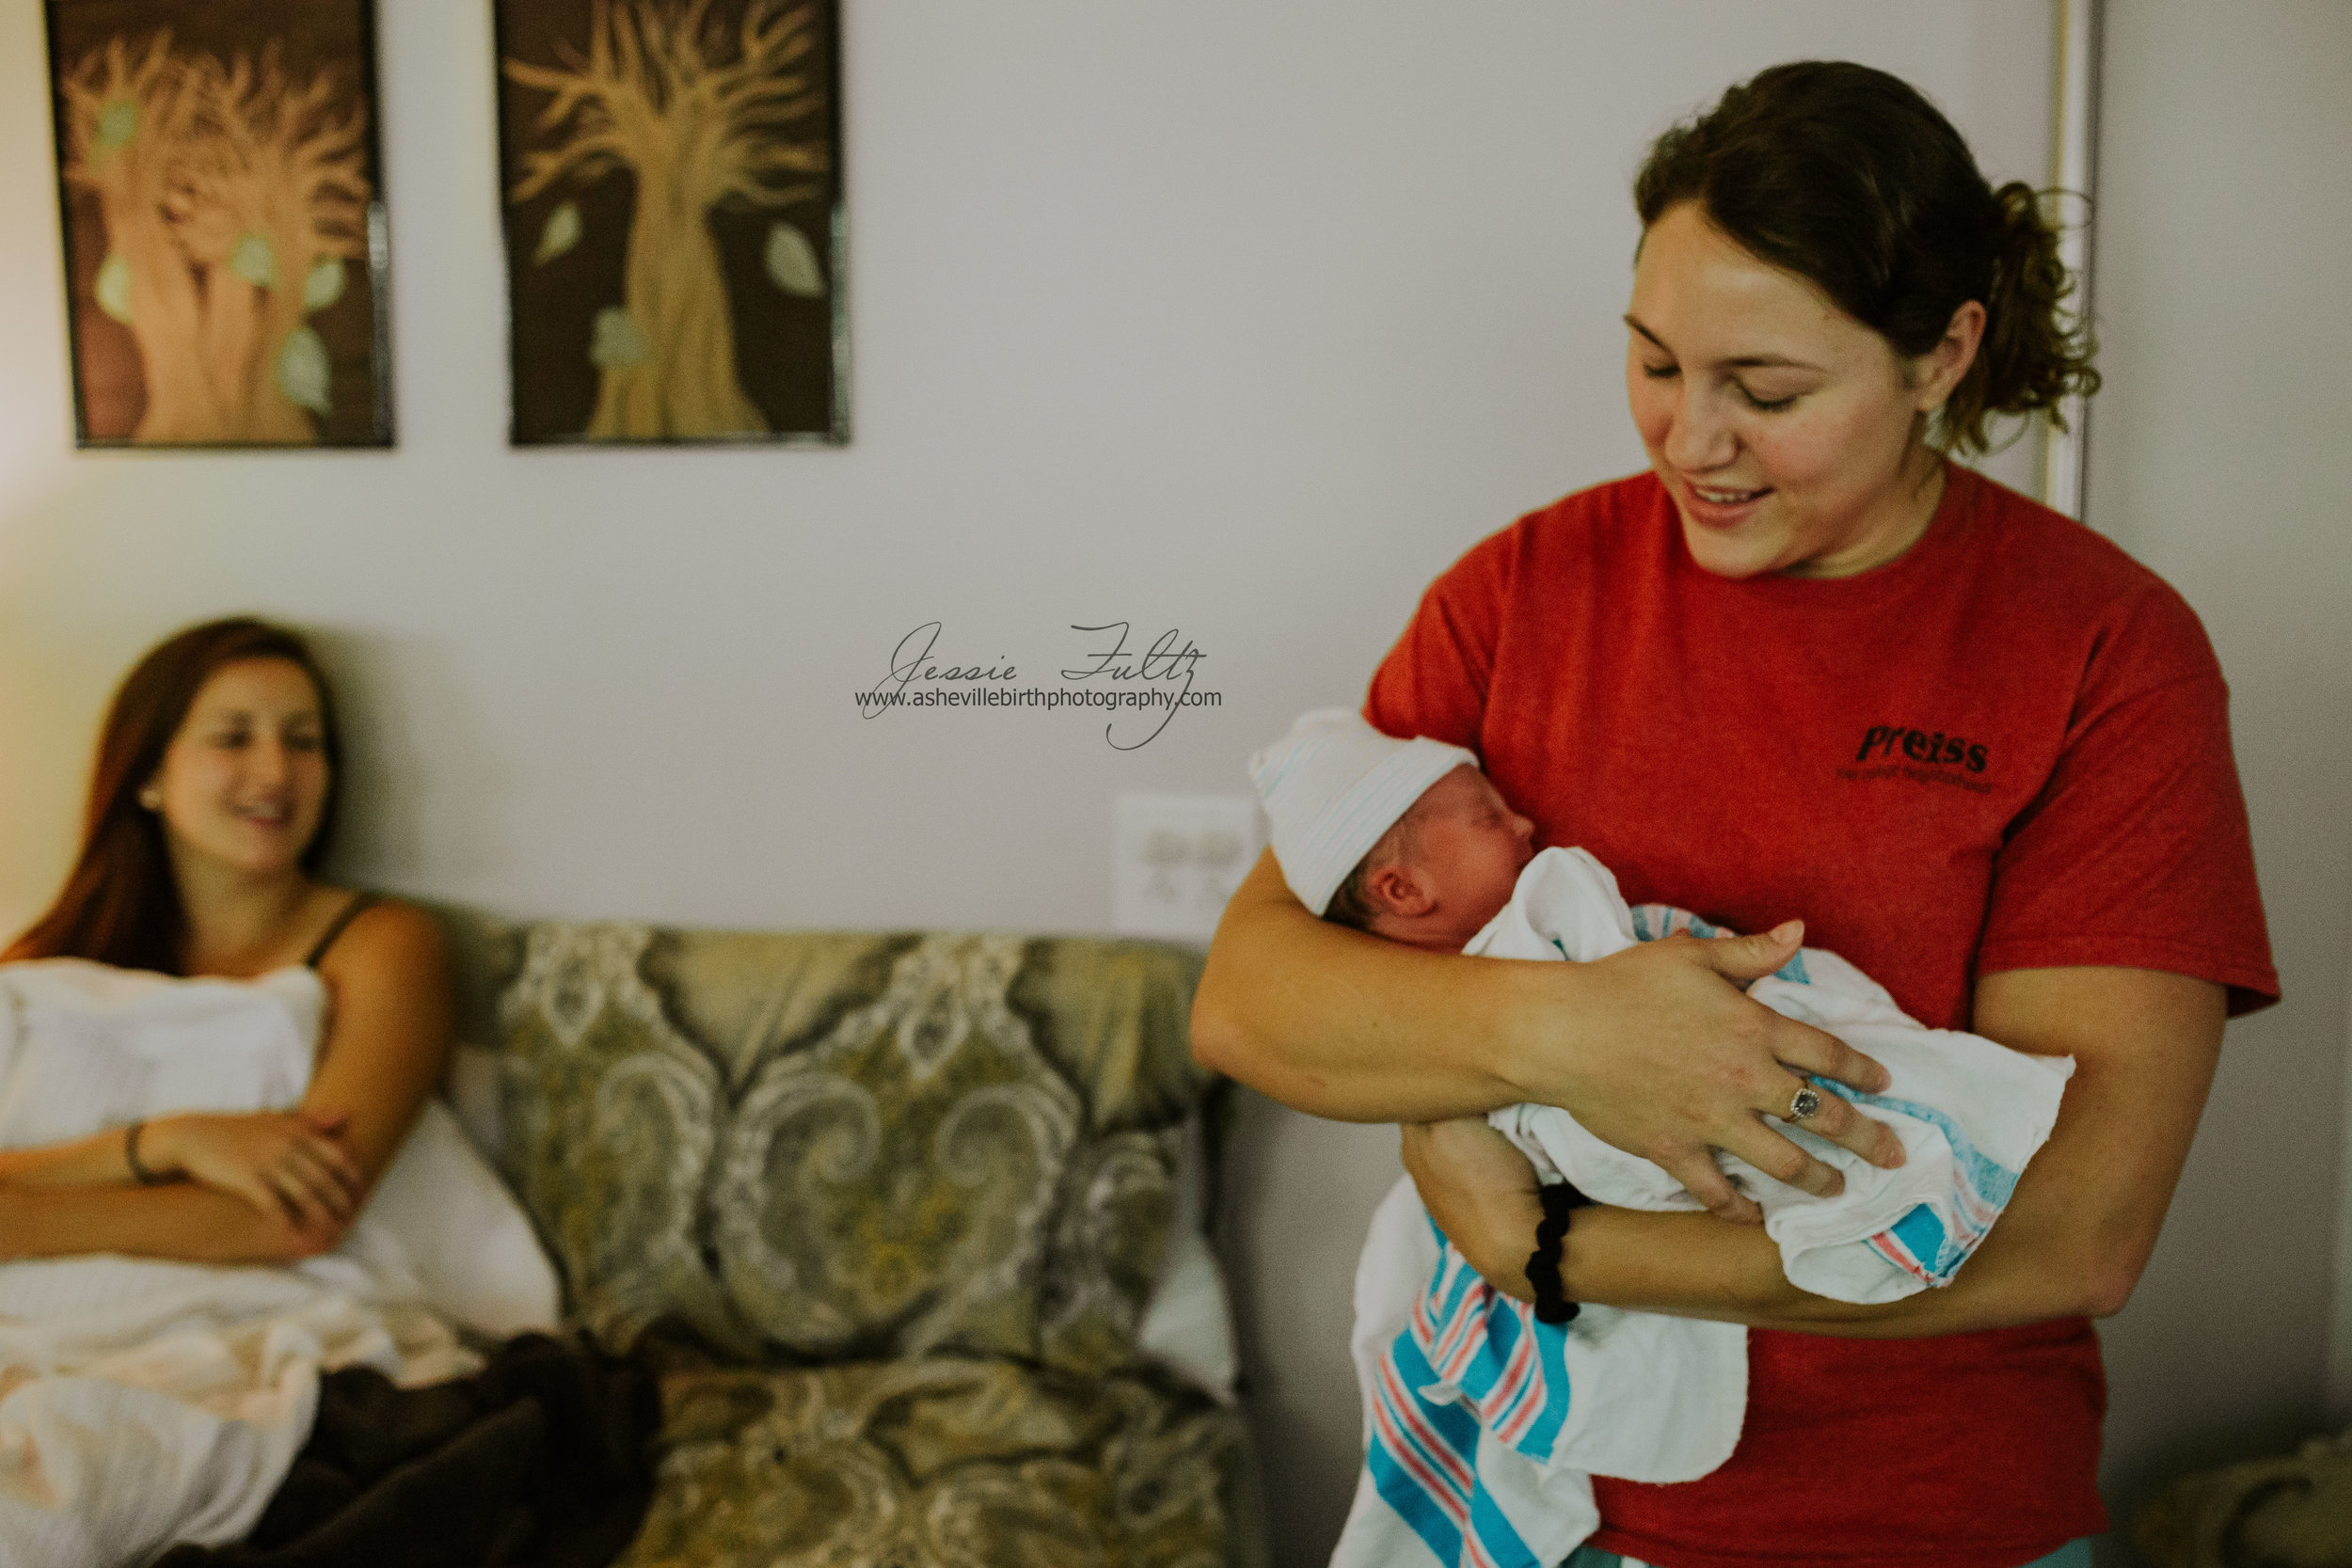 woman holds new baby while mother looks on in the background